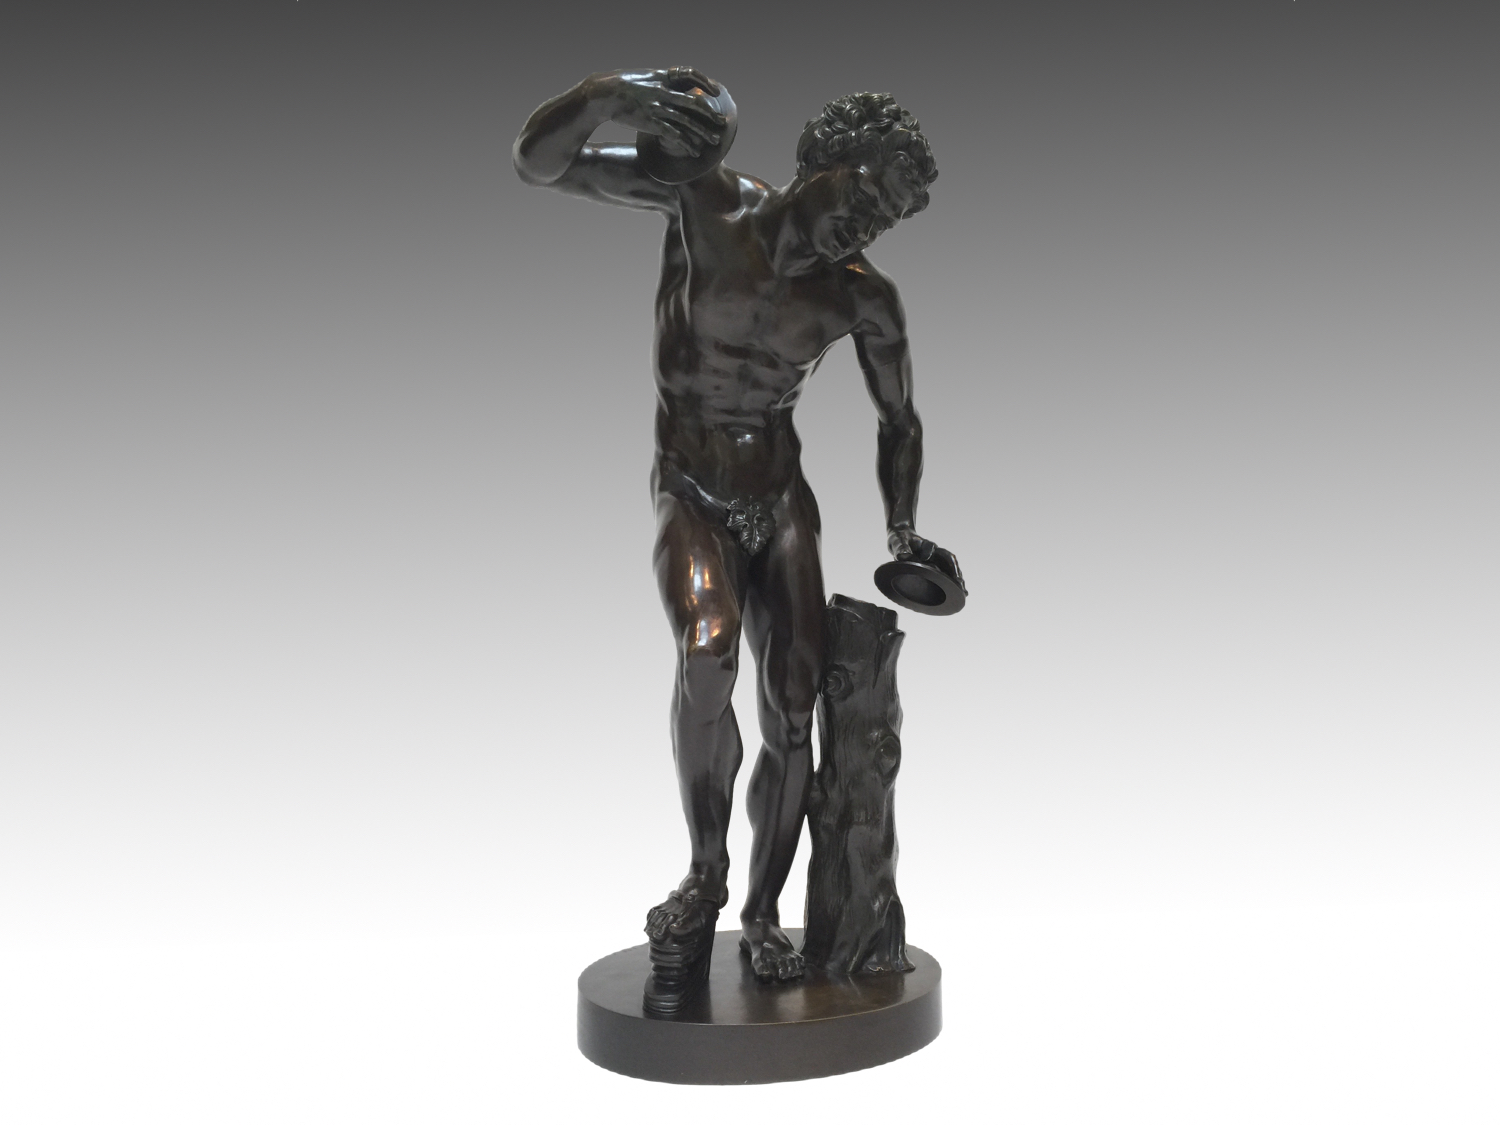 The Uffizi Dancing Faun Cast By Duchemin